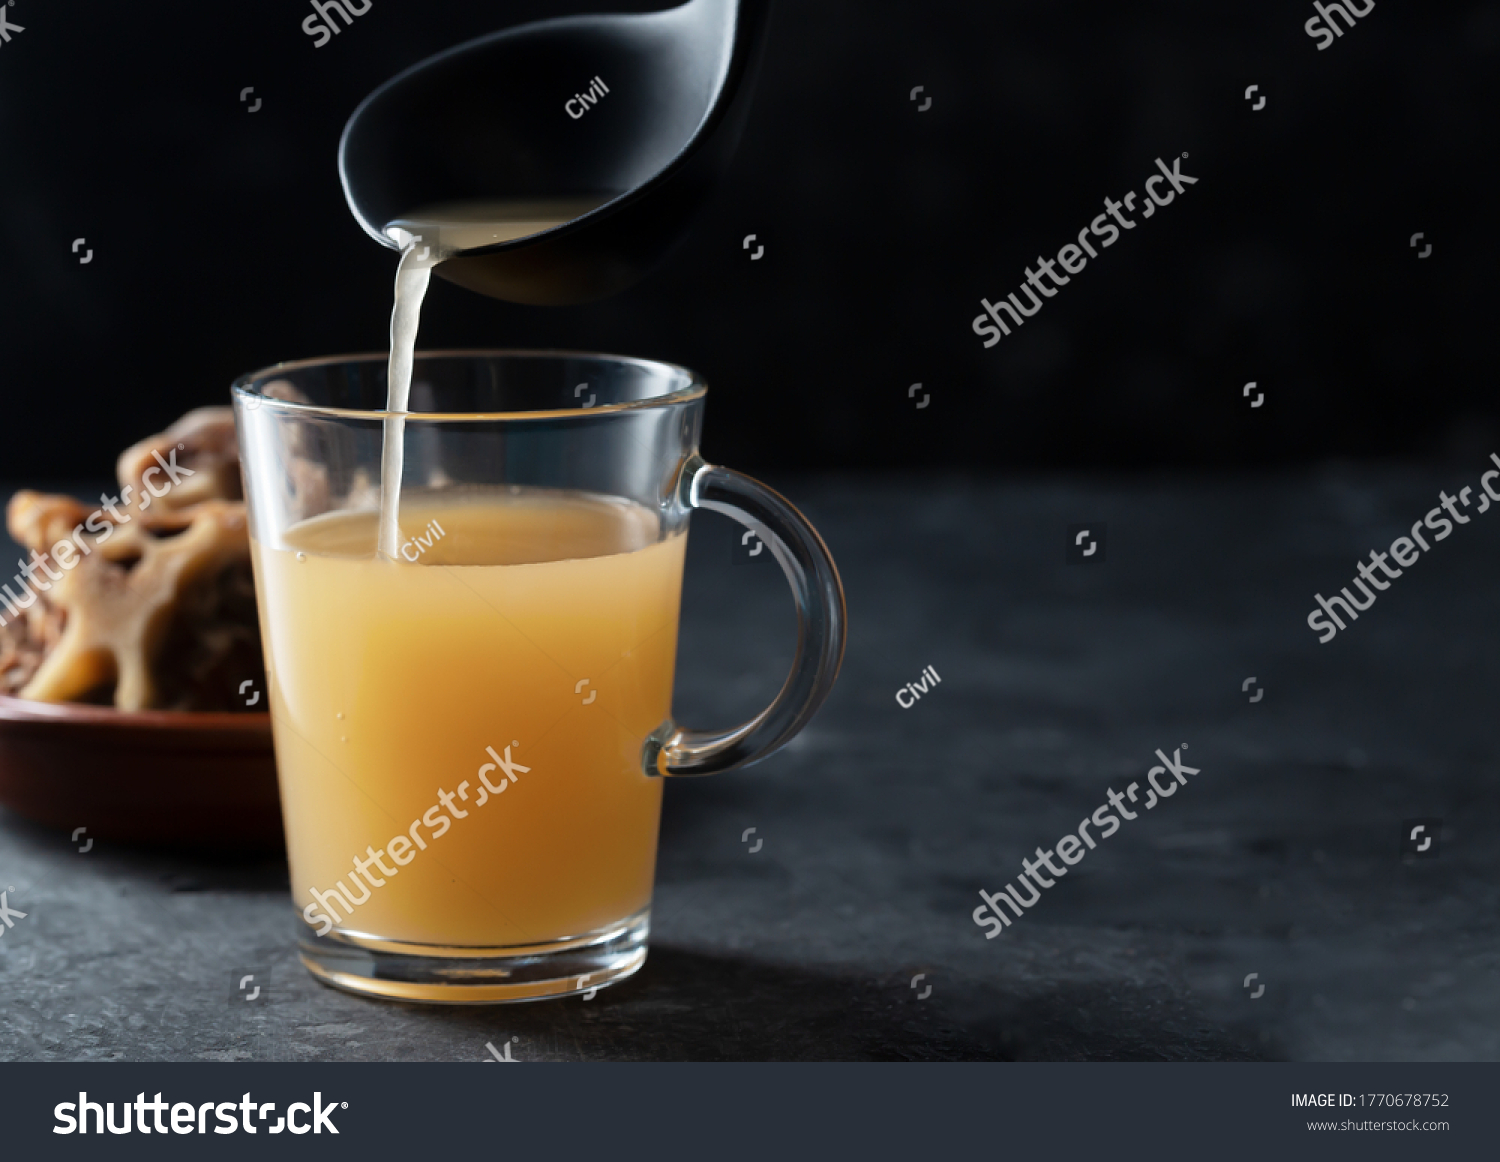 Homemade Beef Bone Broth in Glass Storage Jar on the black background. Bones contain collagen, which provides the body with amino acids, which are the building blocks of proteins #1770678752